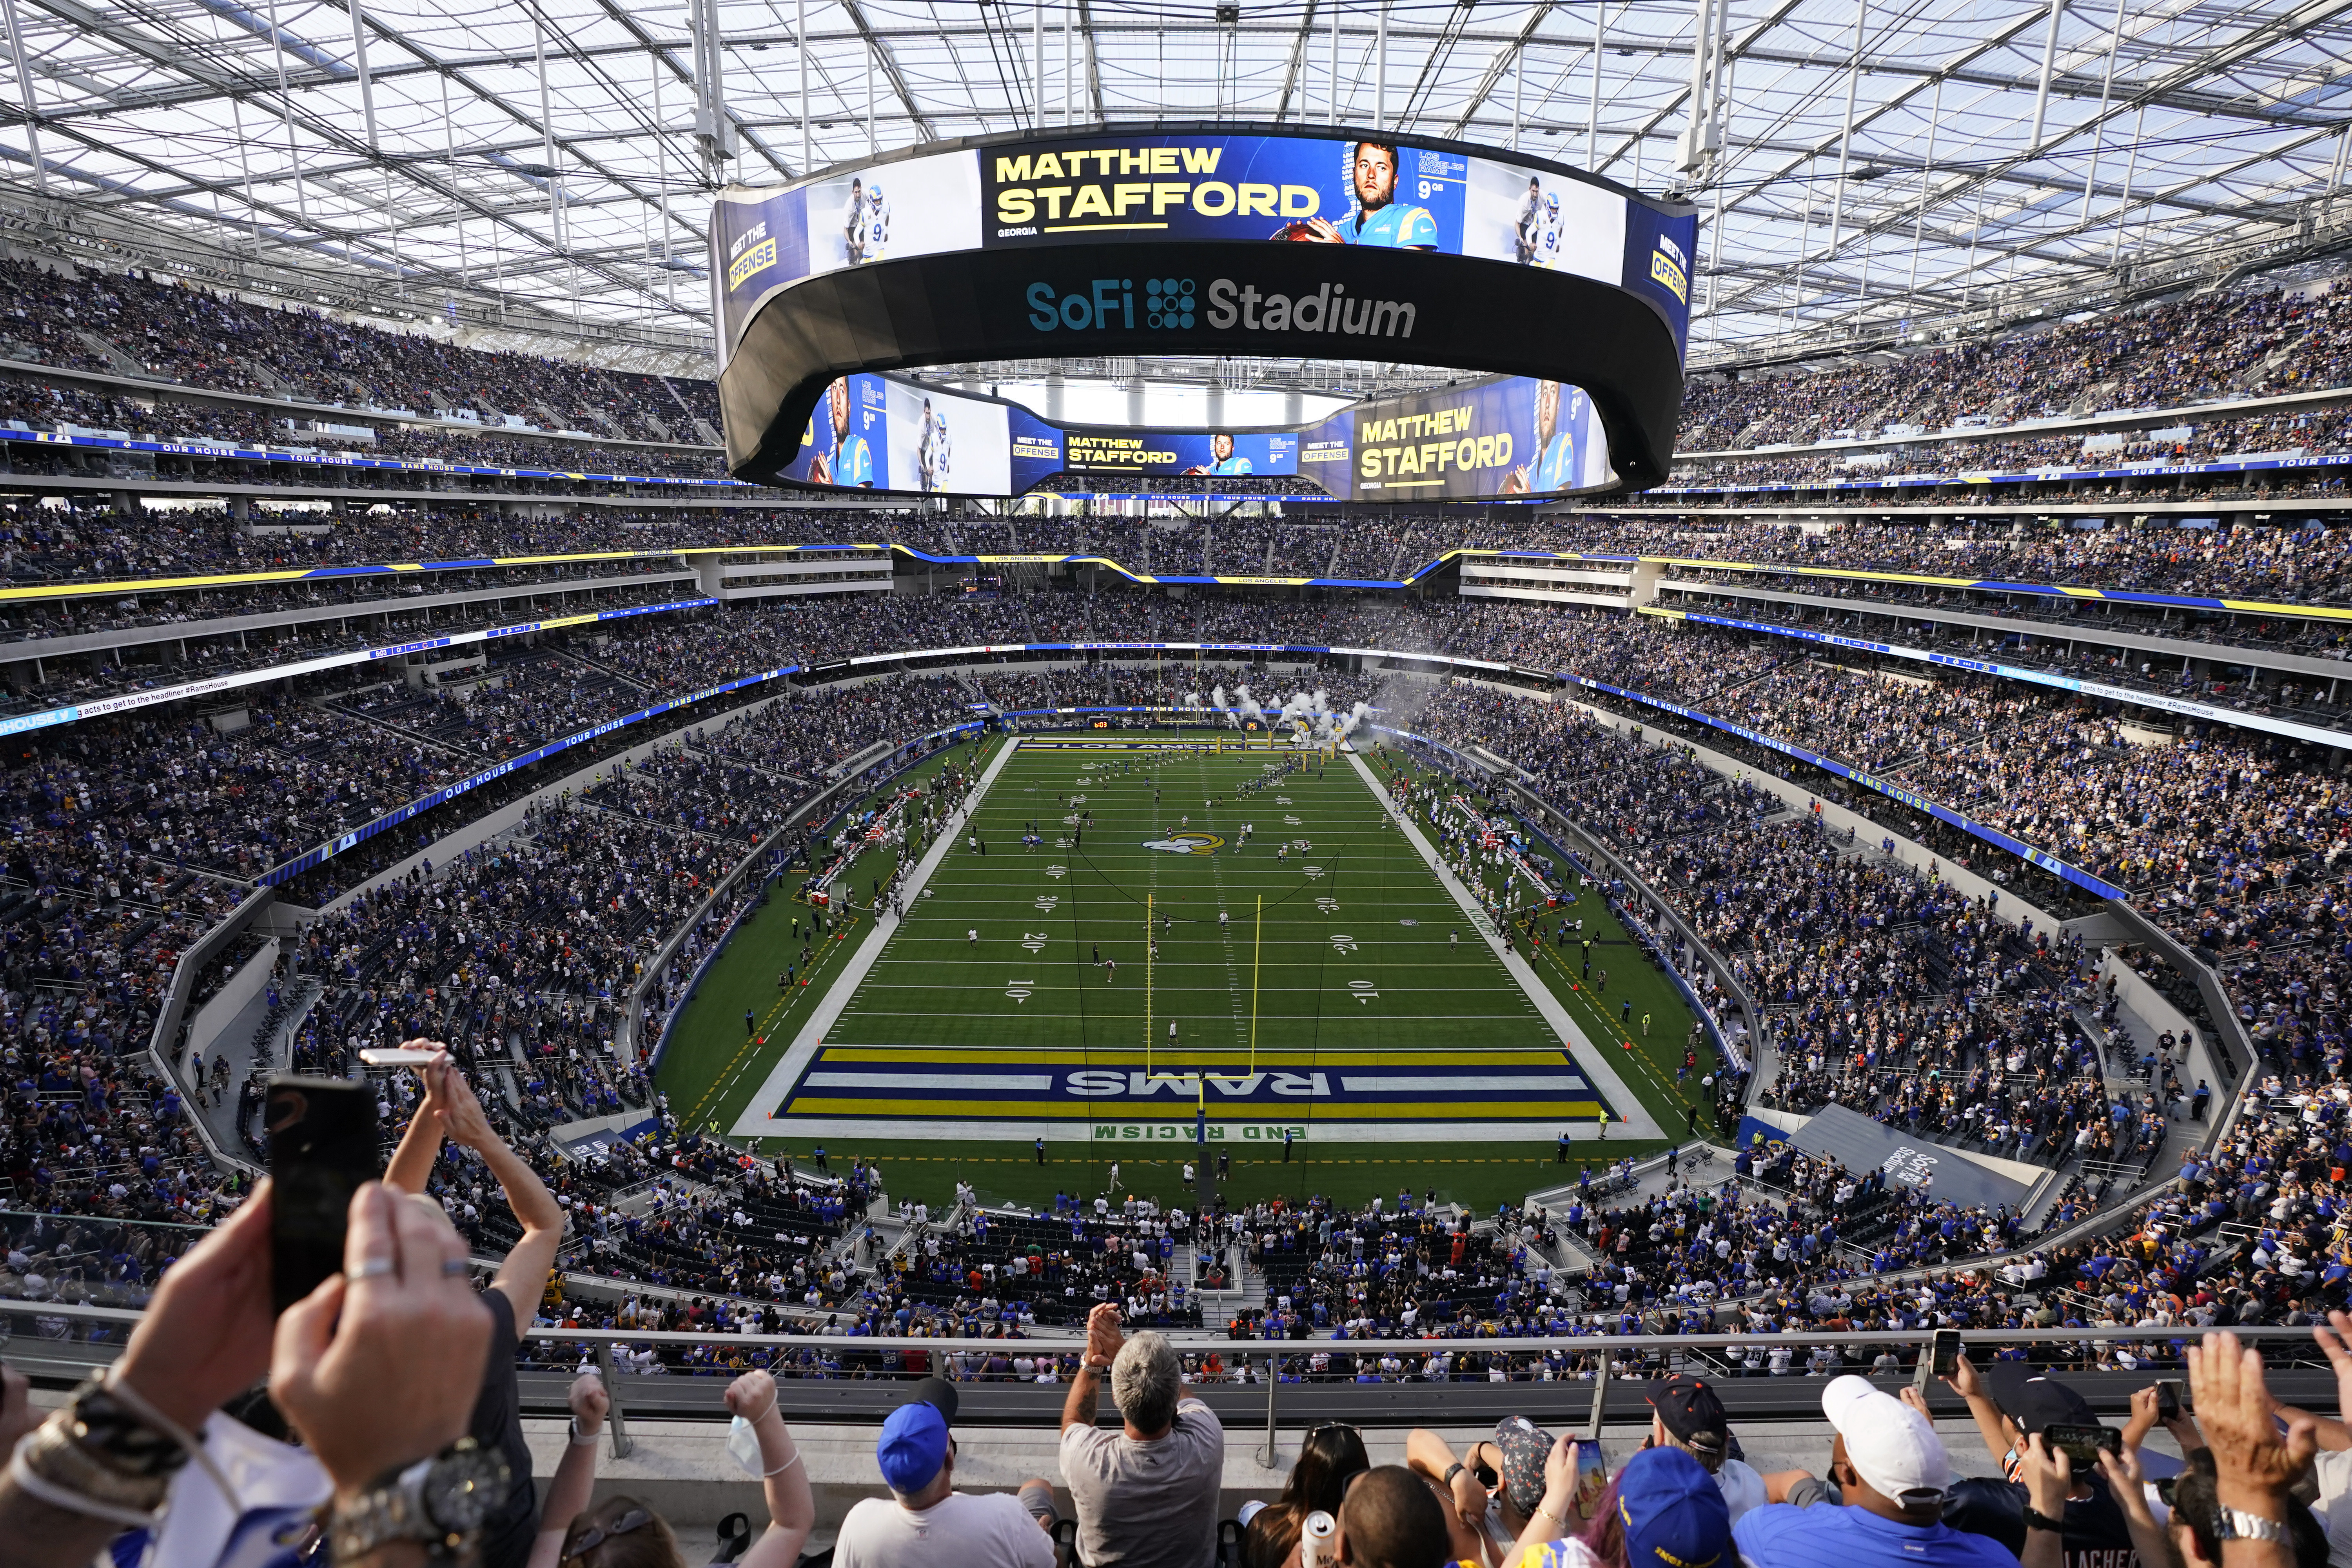 SoFi Stadium in Inglewood, California, hosted NFL fans for the first time during Sunday's Bears-Rams game. It also hosted its first fan brawl.